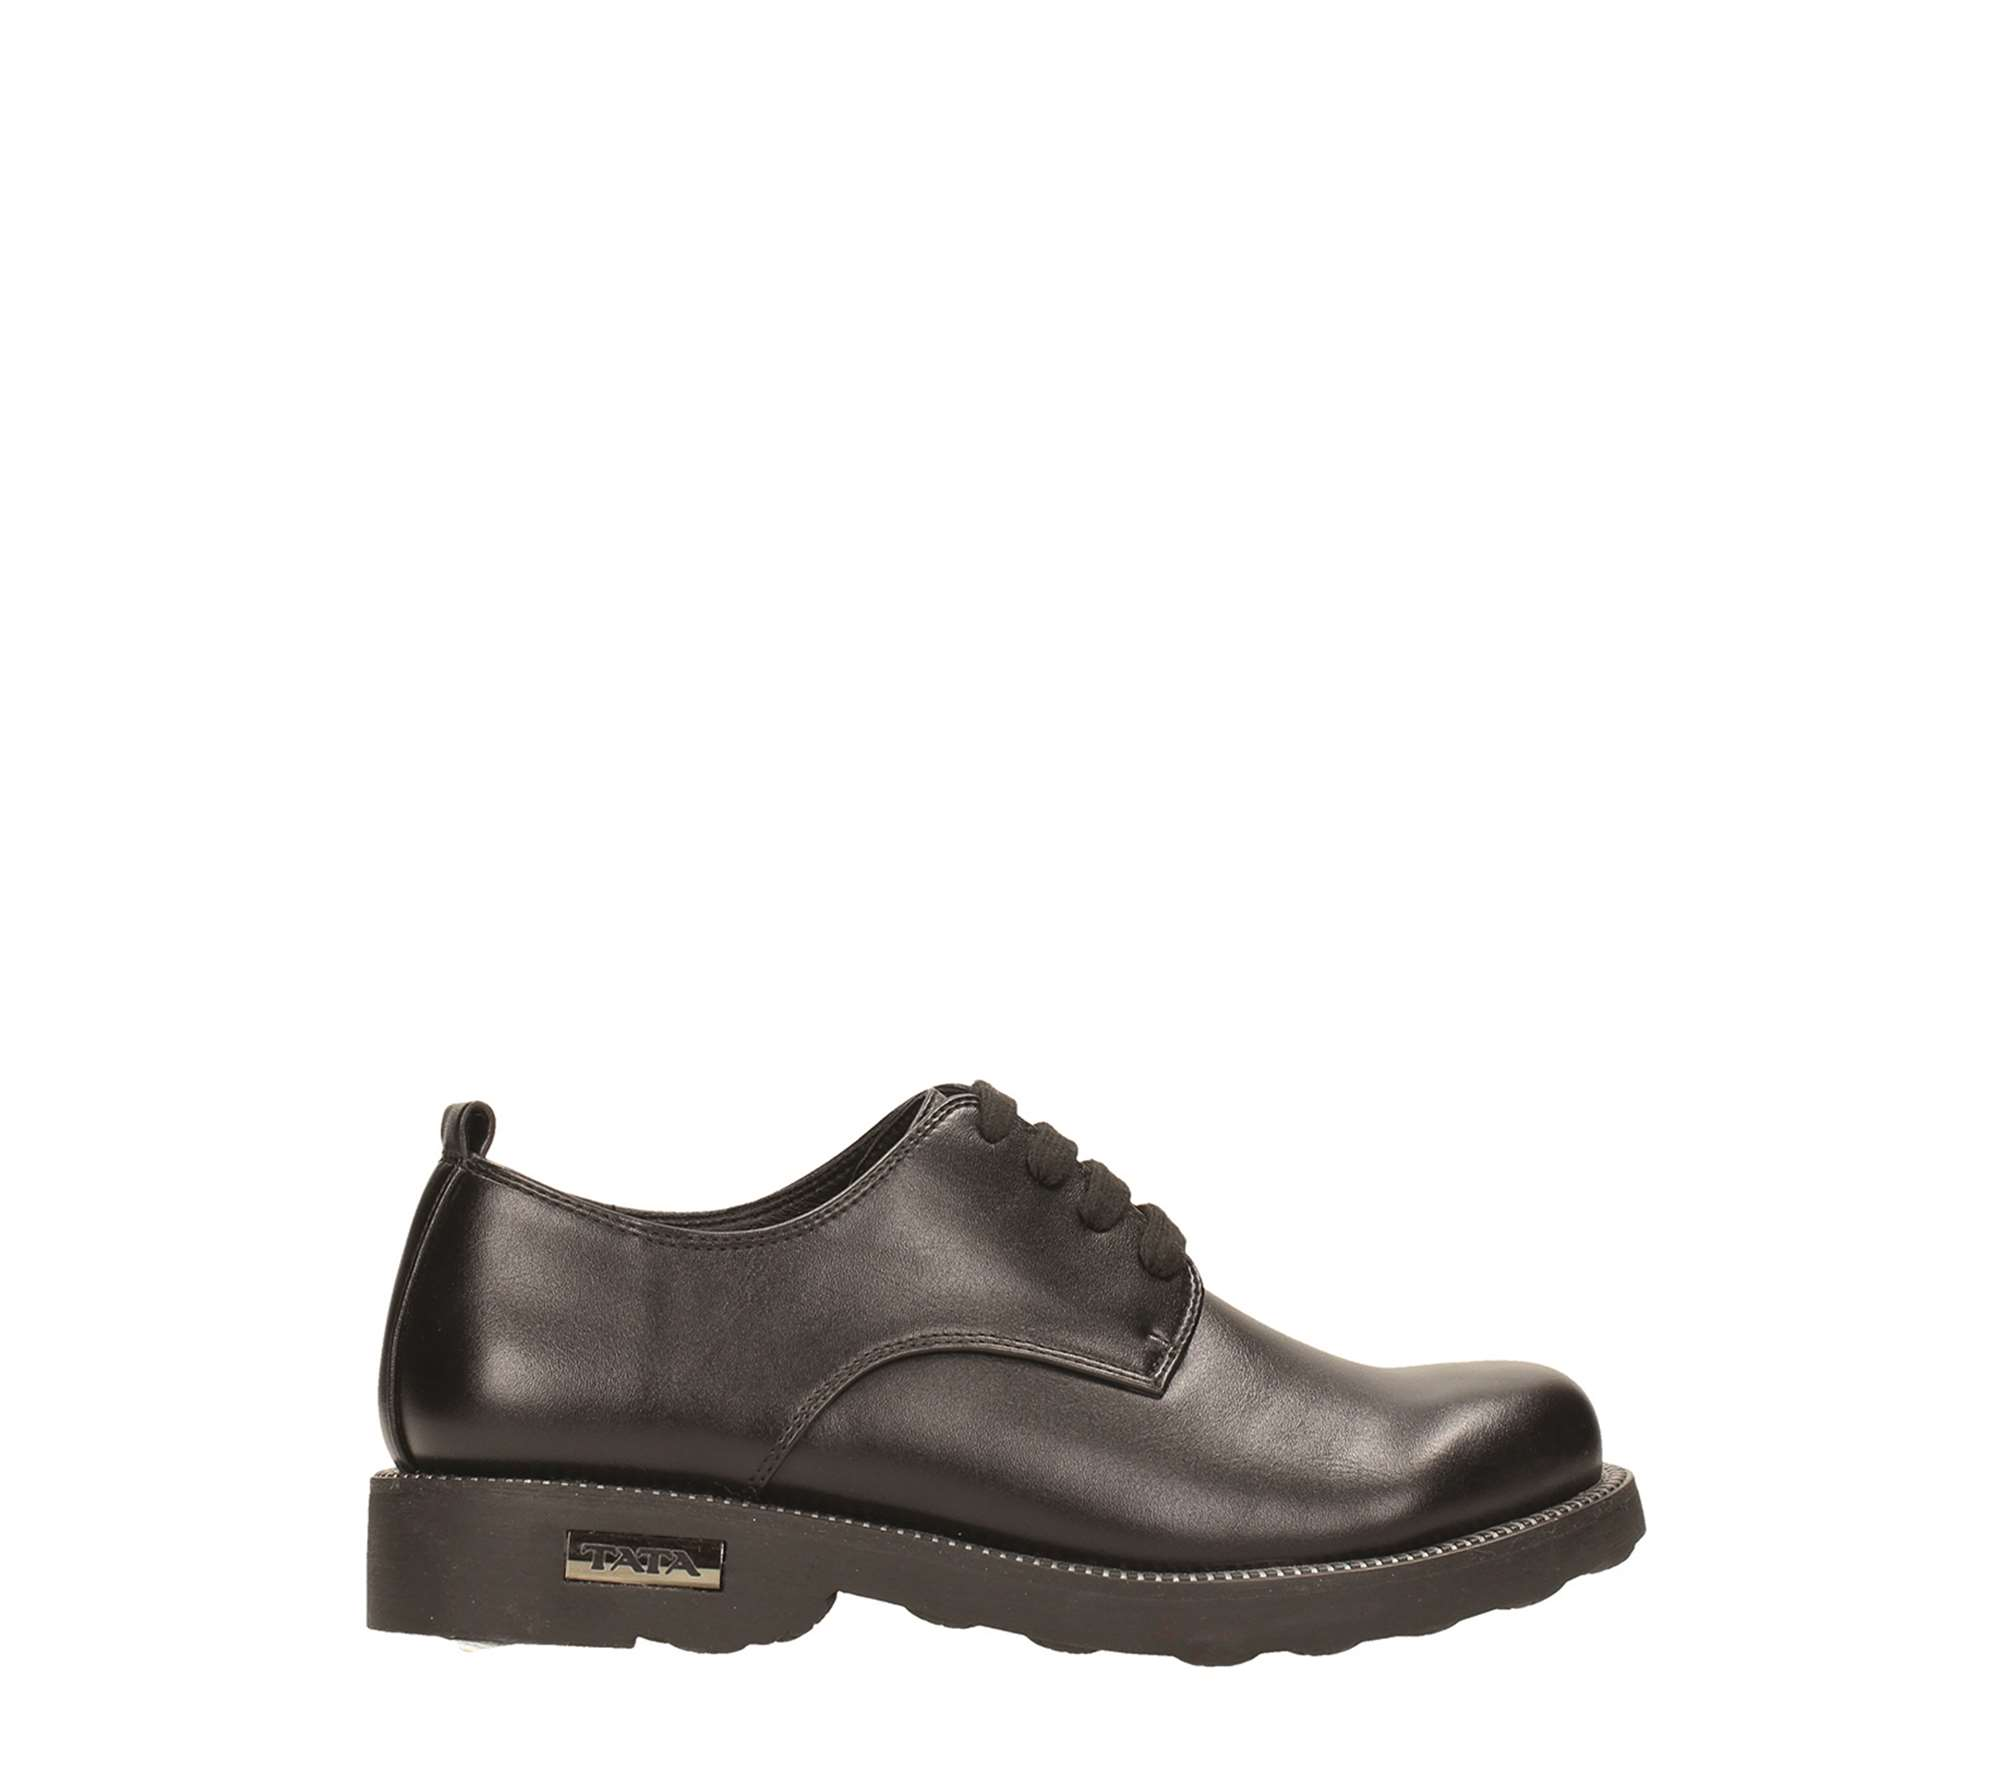 Tata Italia Shoes Woman Derby 7120